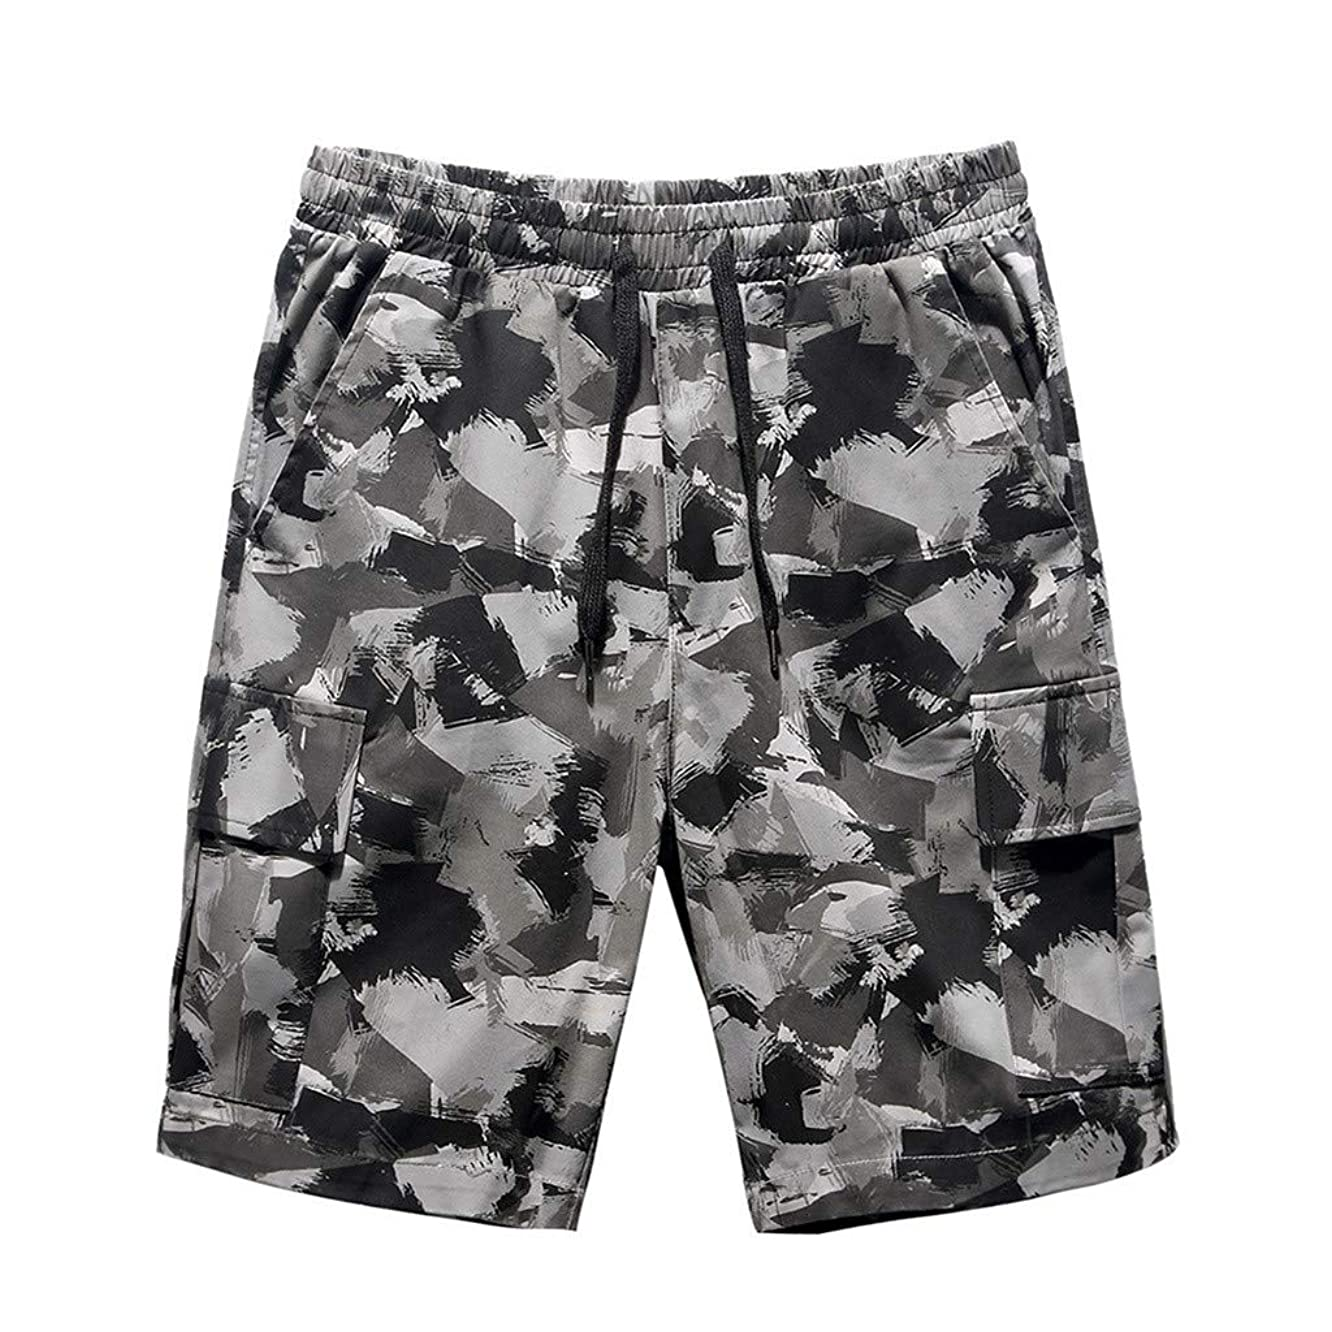 Fitfulvan Shorts Men's Loose Camouflage Printed Shorts Personalized Casual Sweatpants Summer Fashion Loose Beach Pants